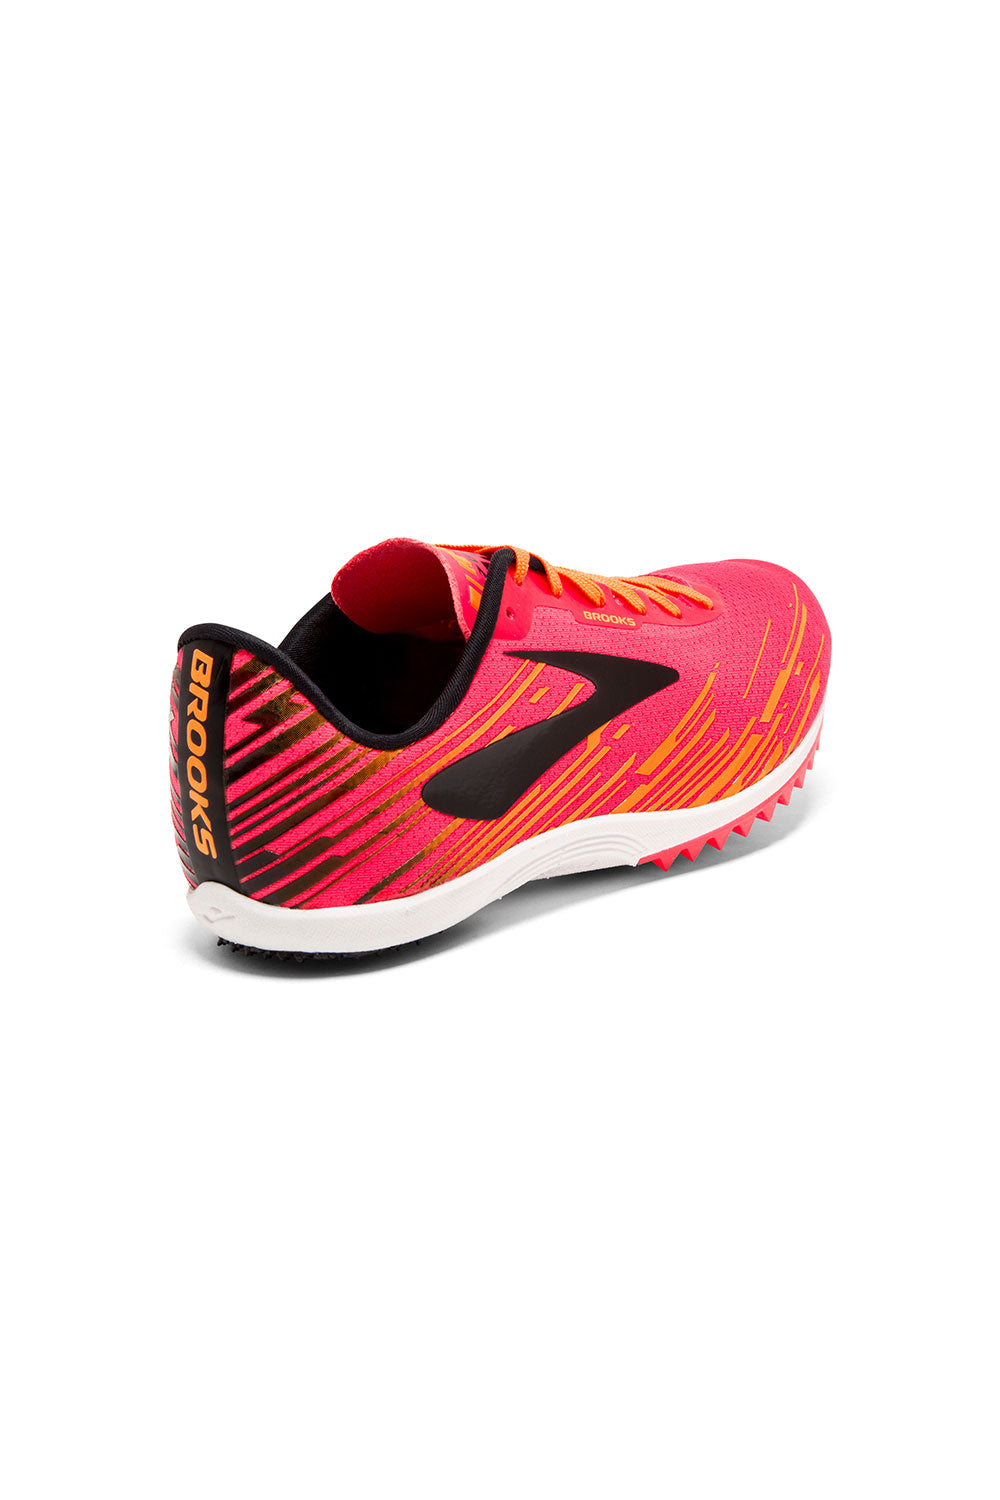 cab4c0f0200fe Brooks W Mach 18 – Gazelle Sports